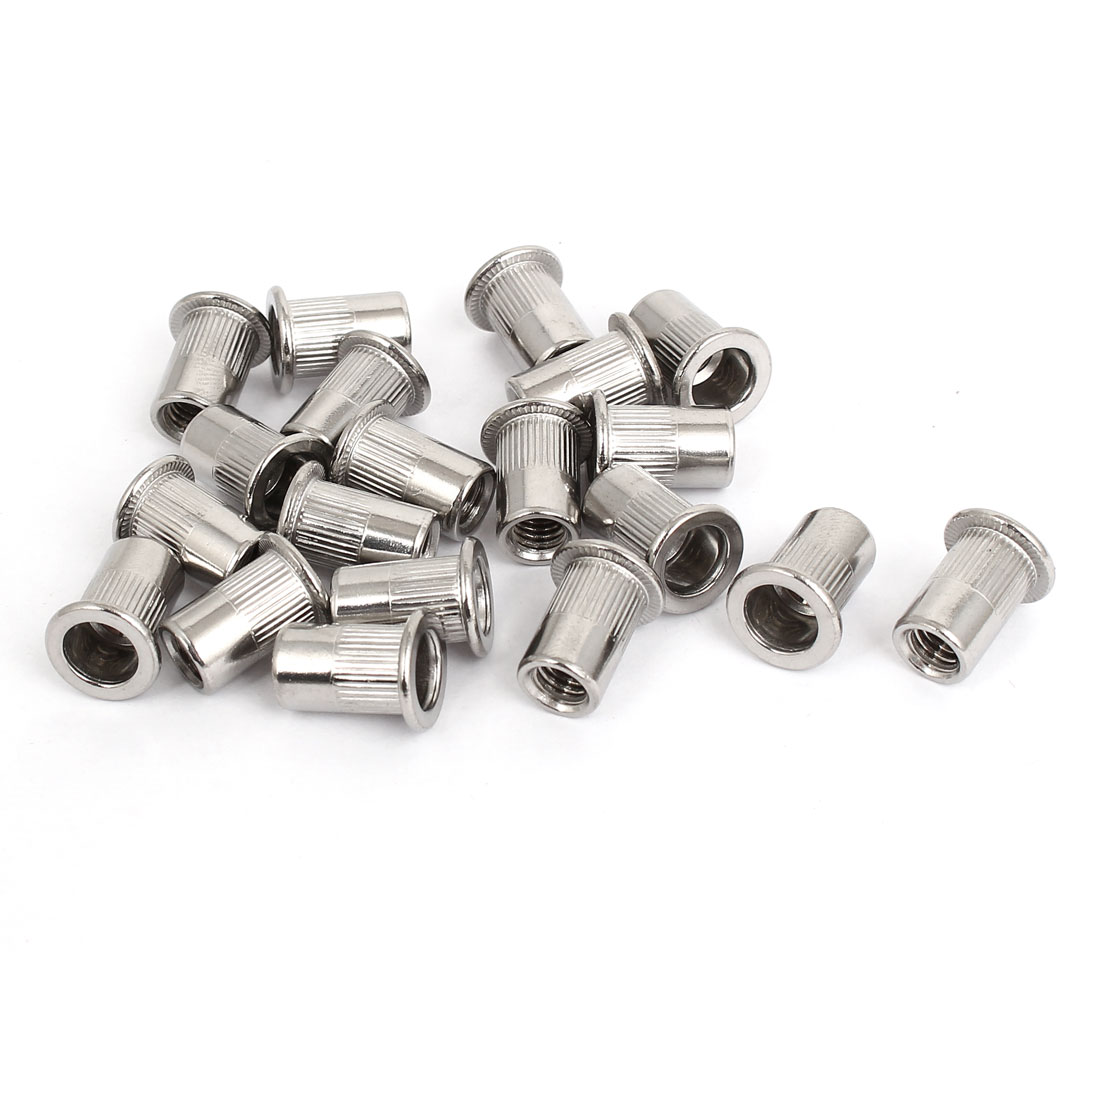 M6 Thread 304 Stainless Steel Rivet Nut Insert Nutsert 20pcs